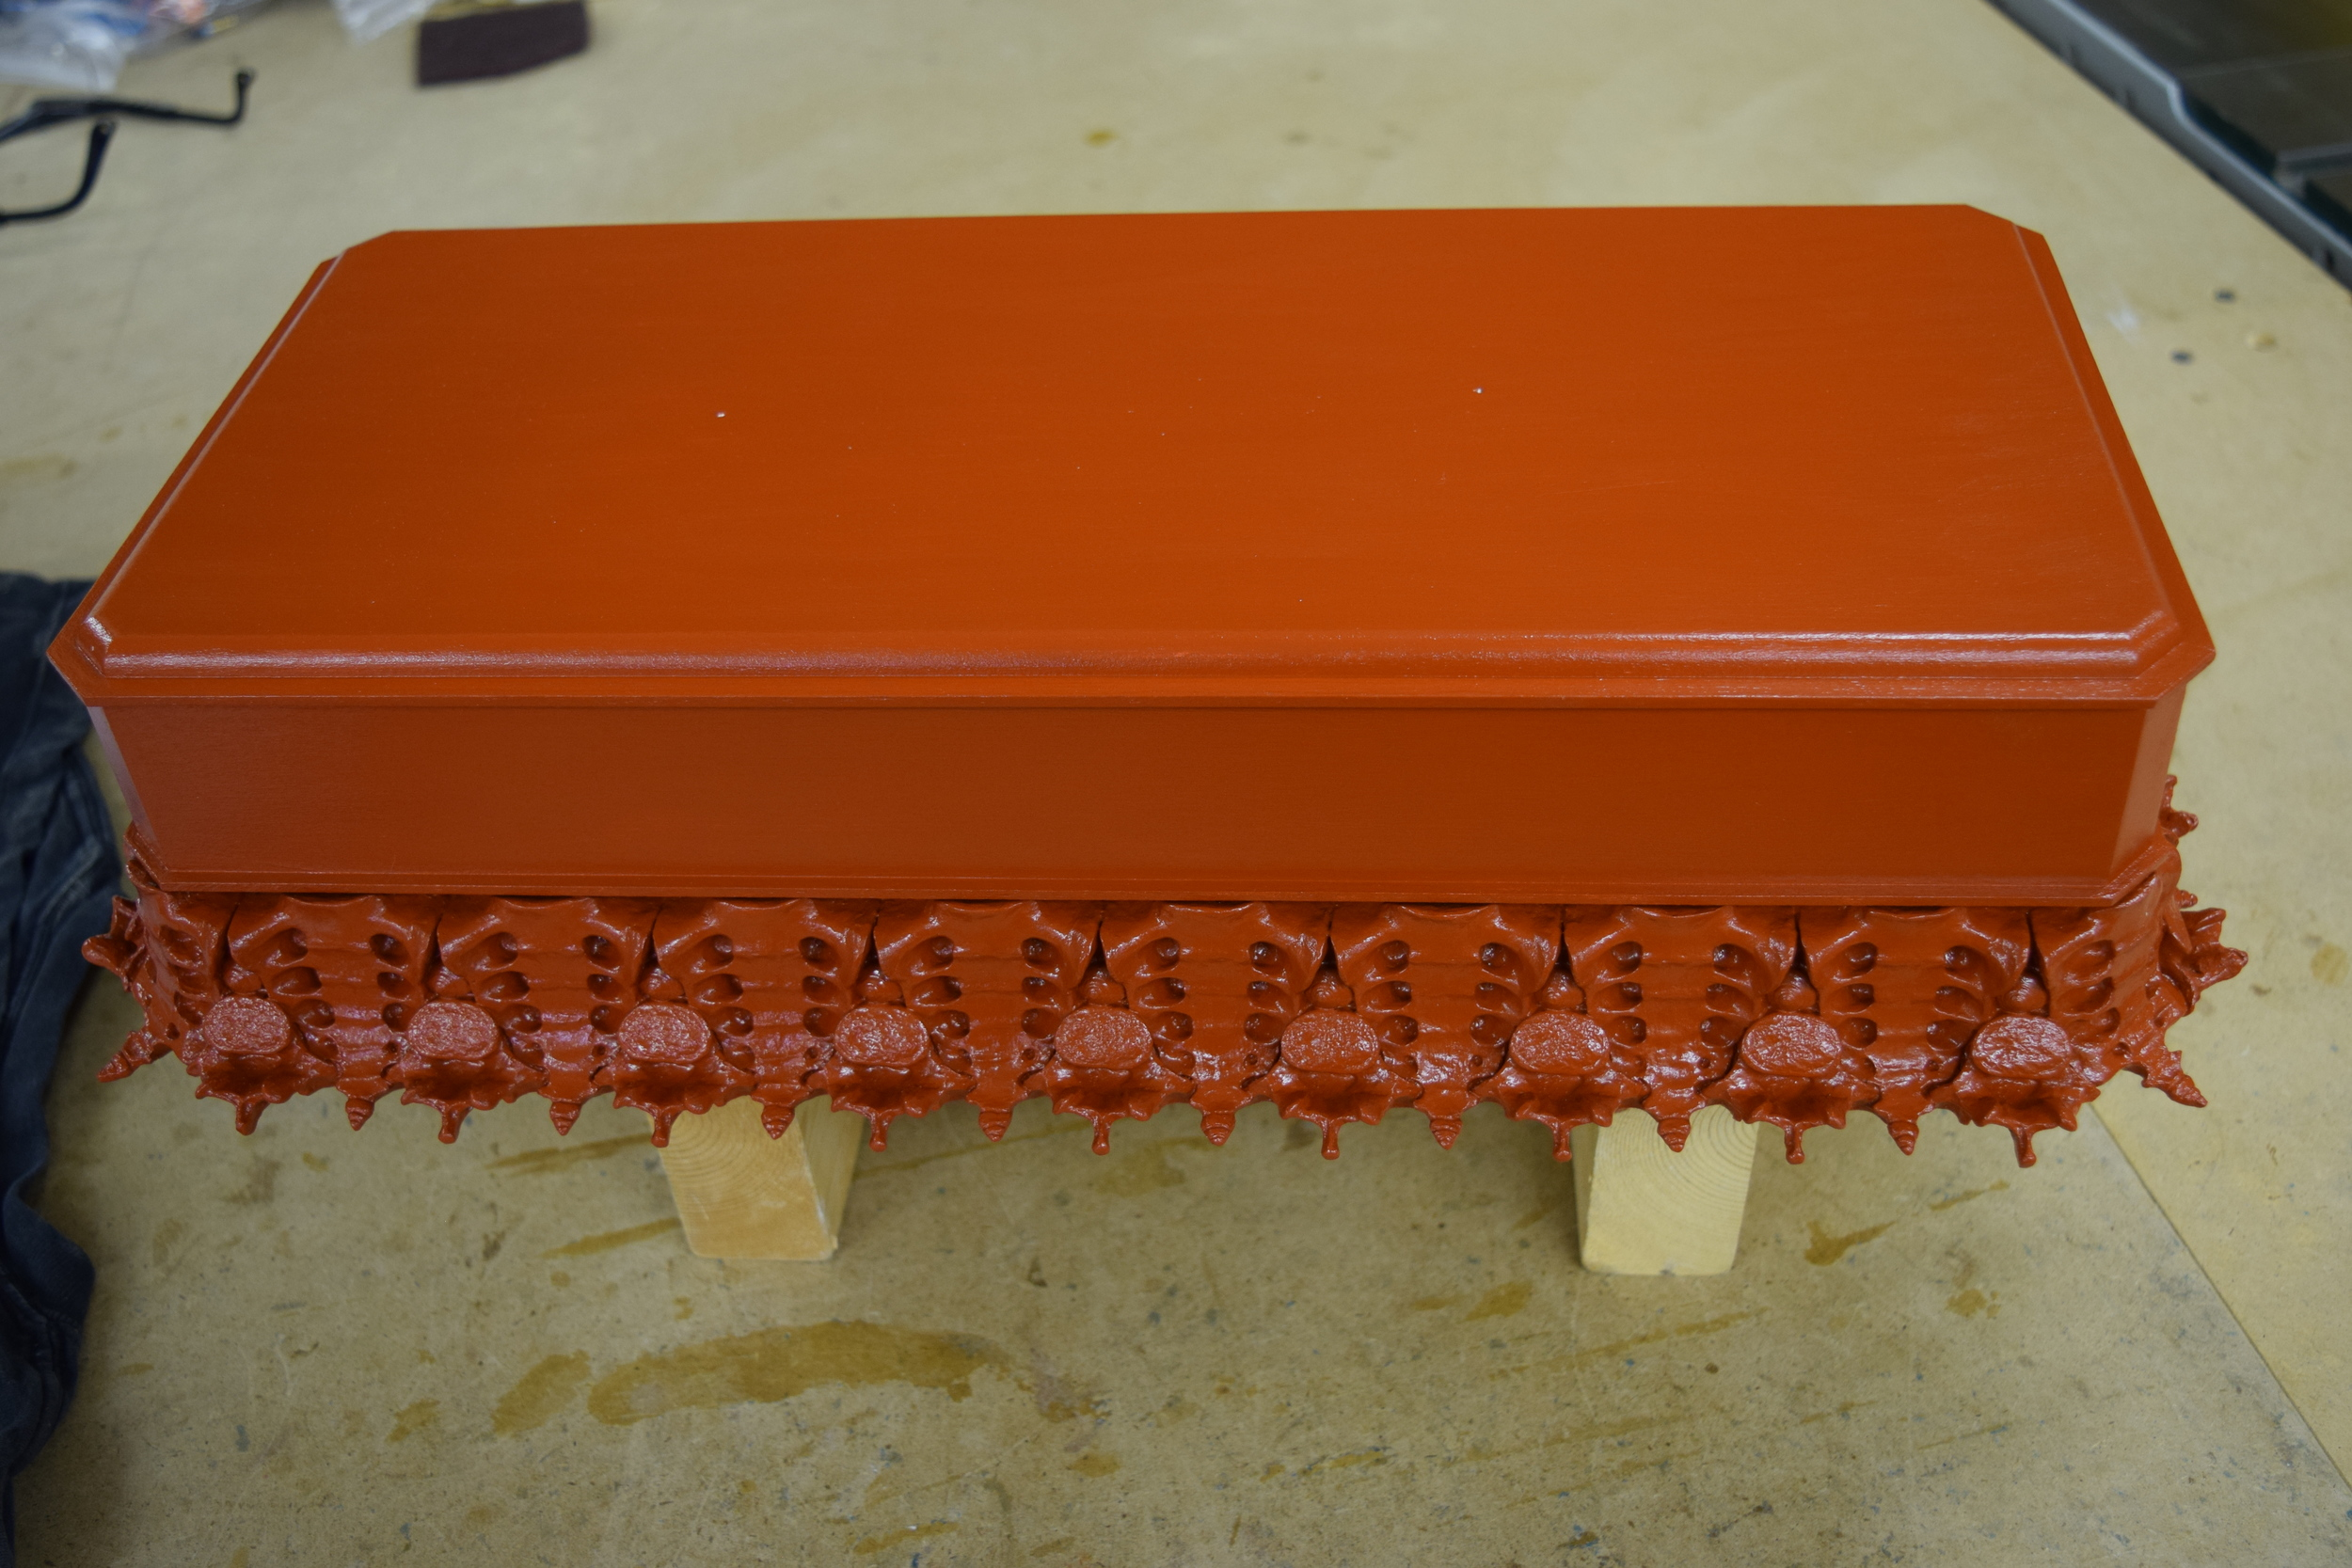 The finished red oxide base coat.